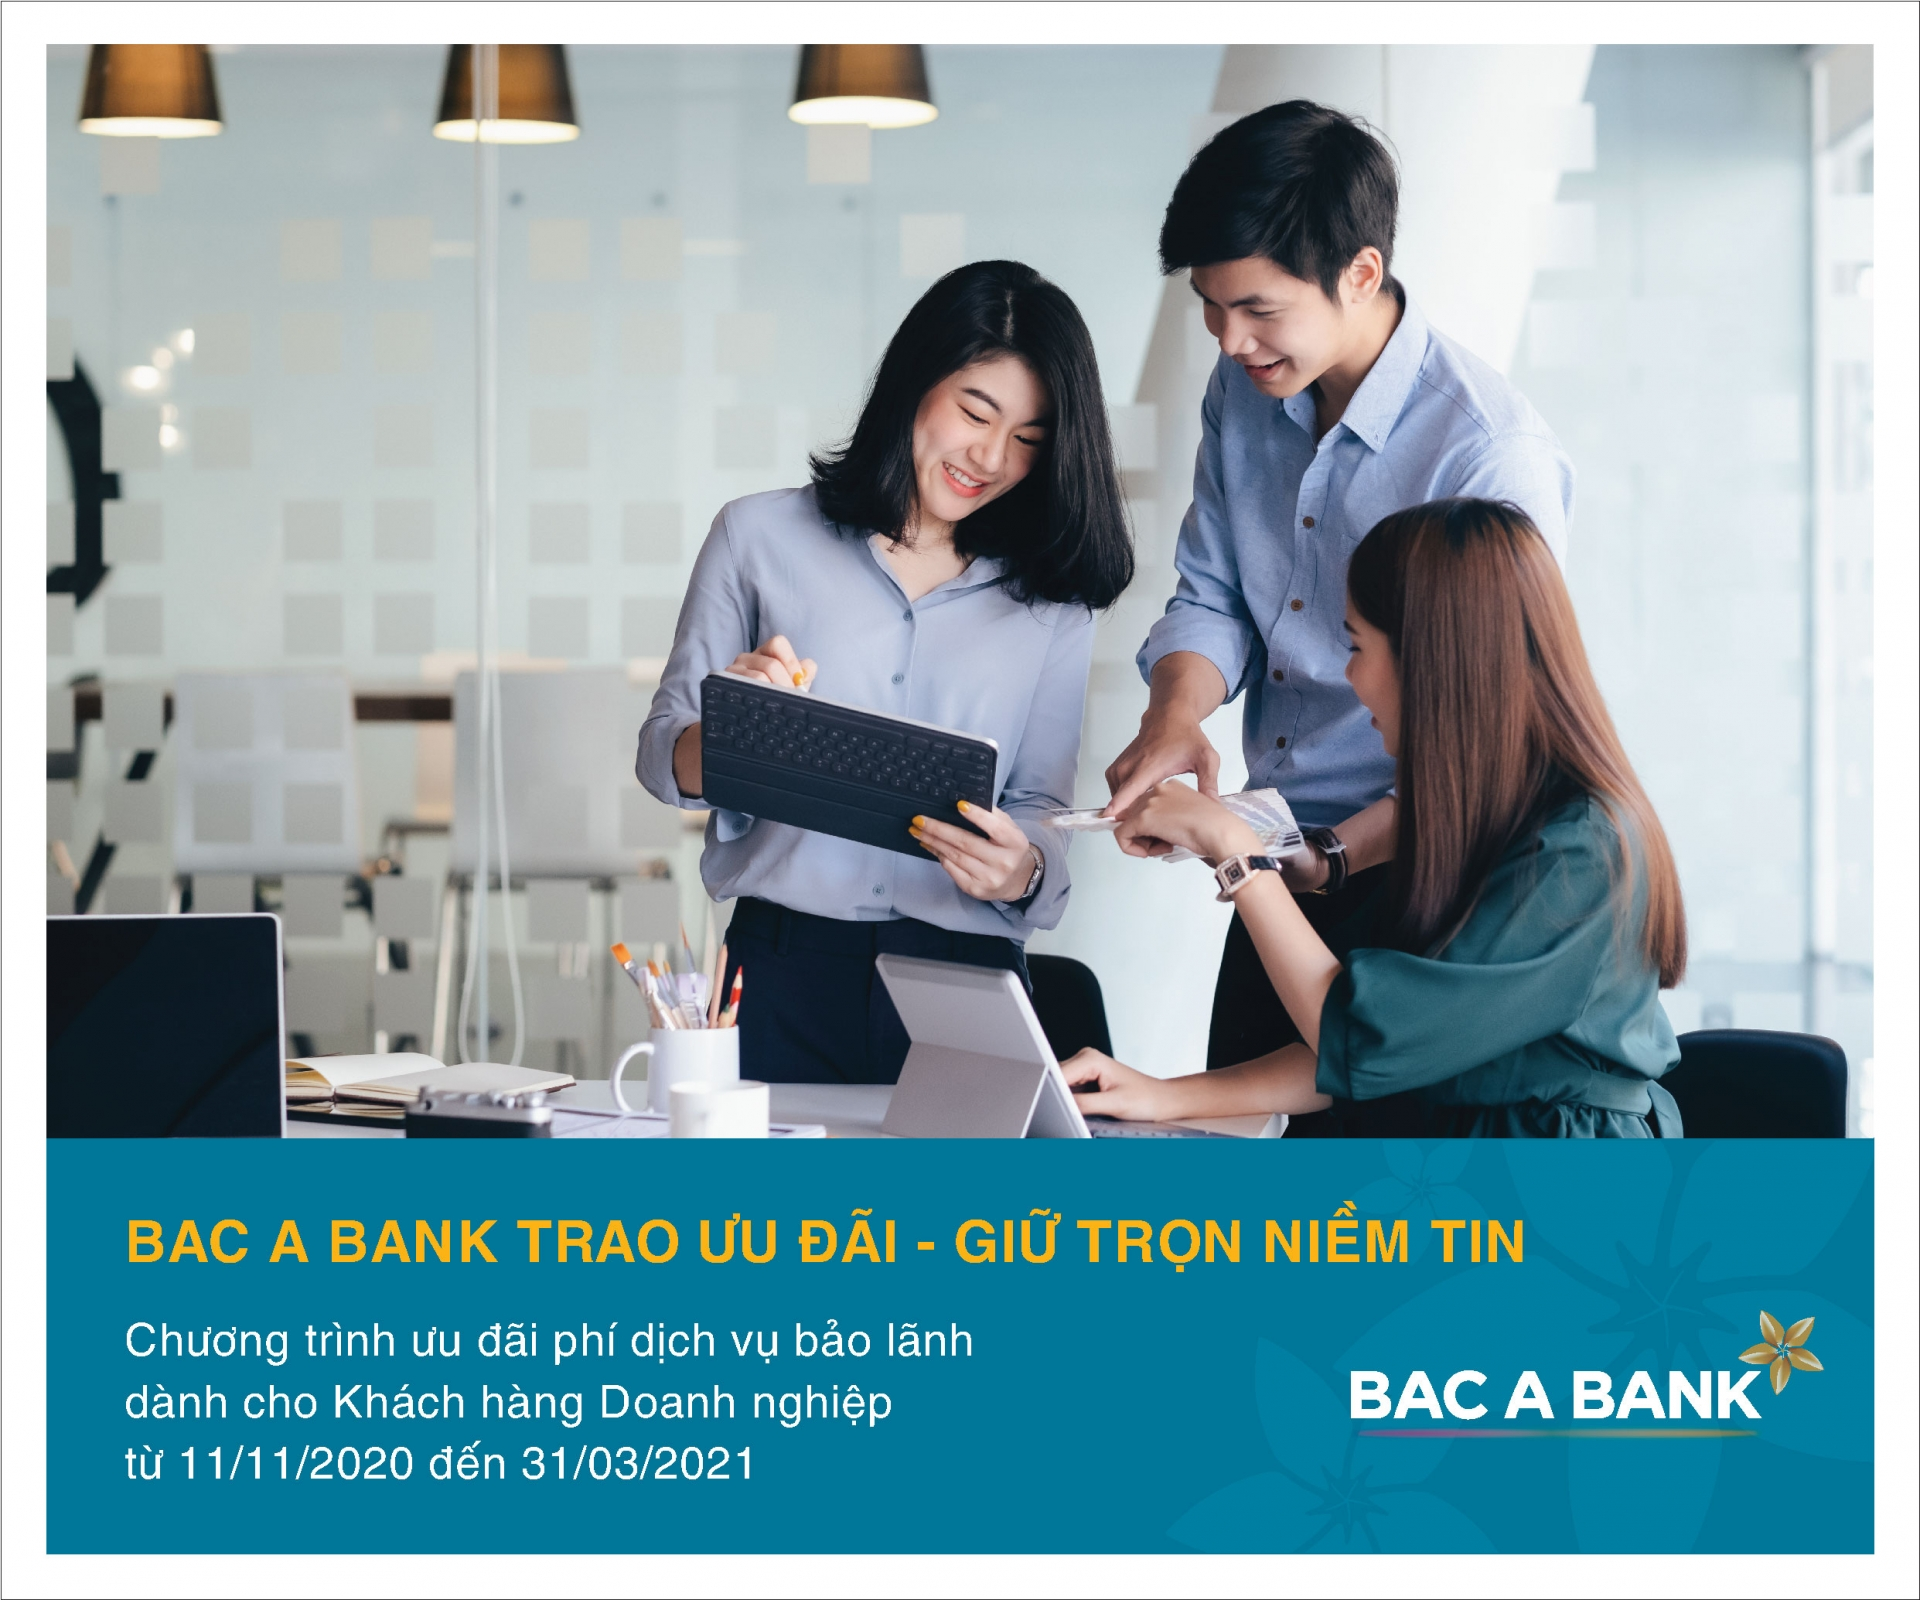 guarantee incentives for corporate customers at bac a bank